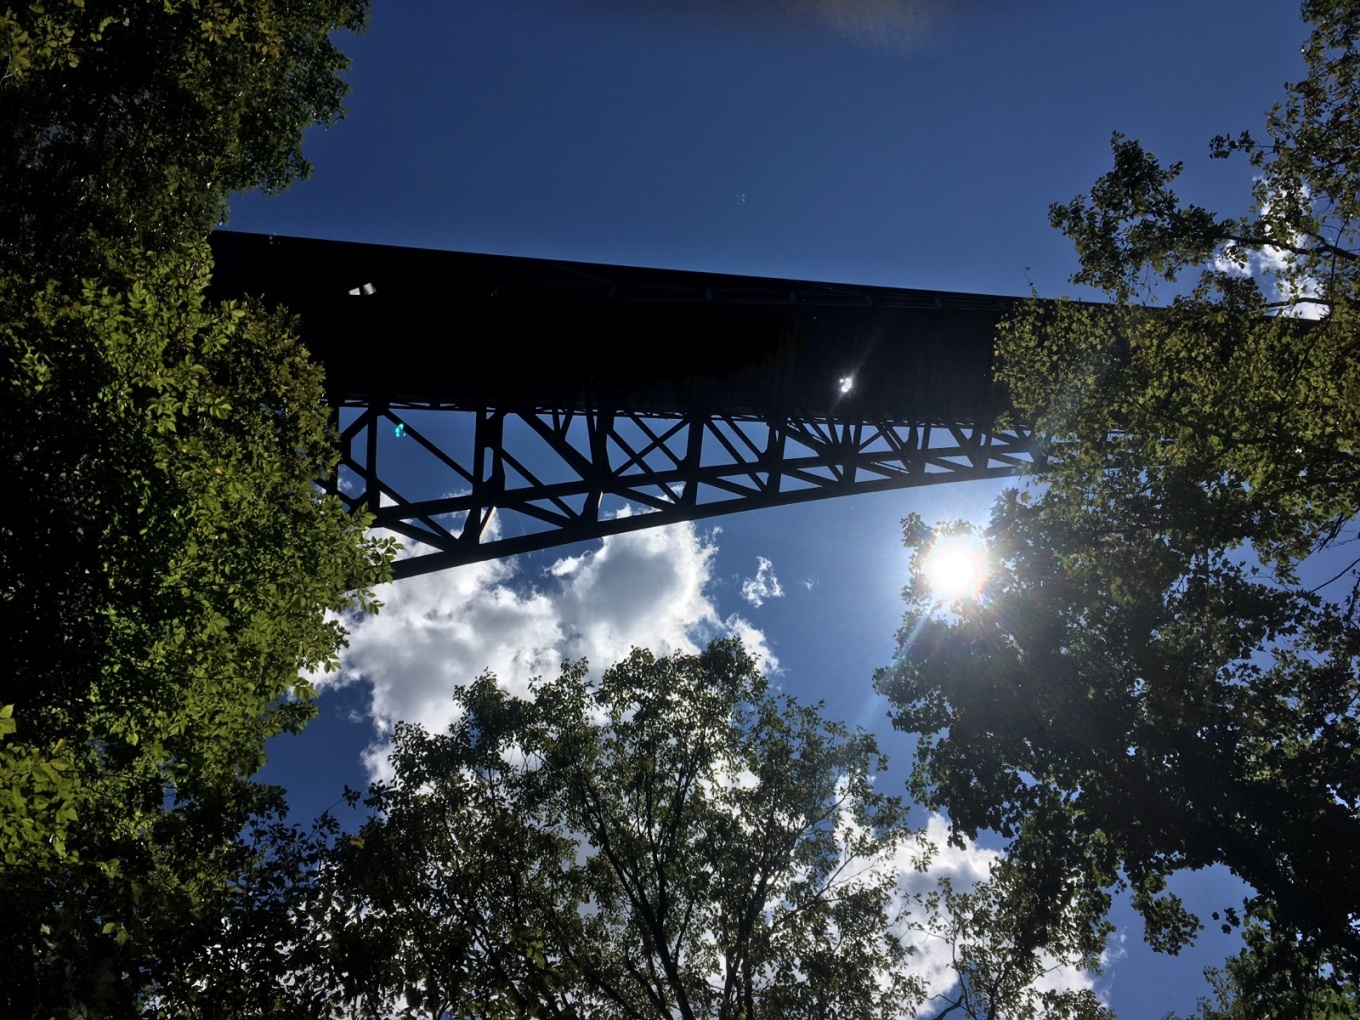 The New River Gorge Bridge as seen from below